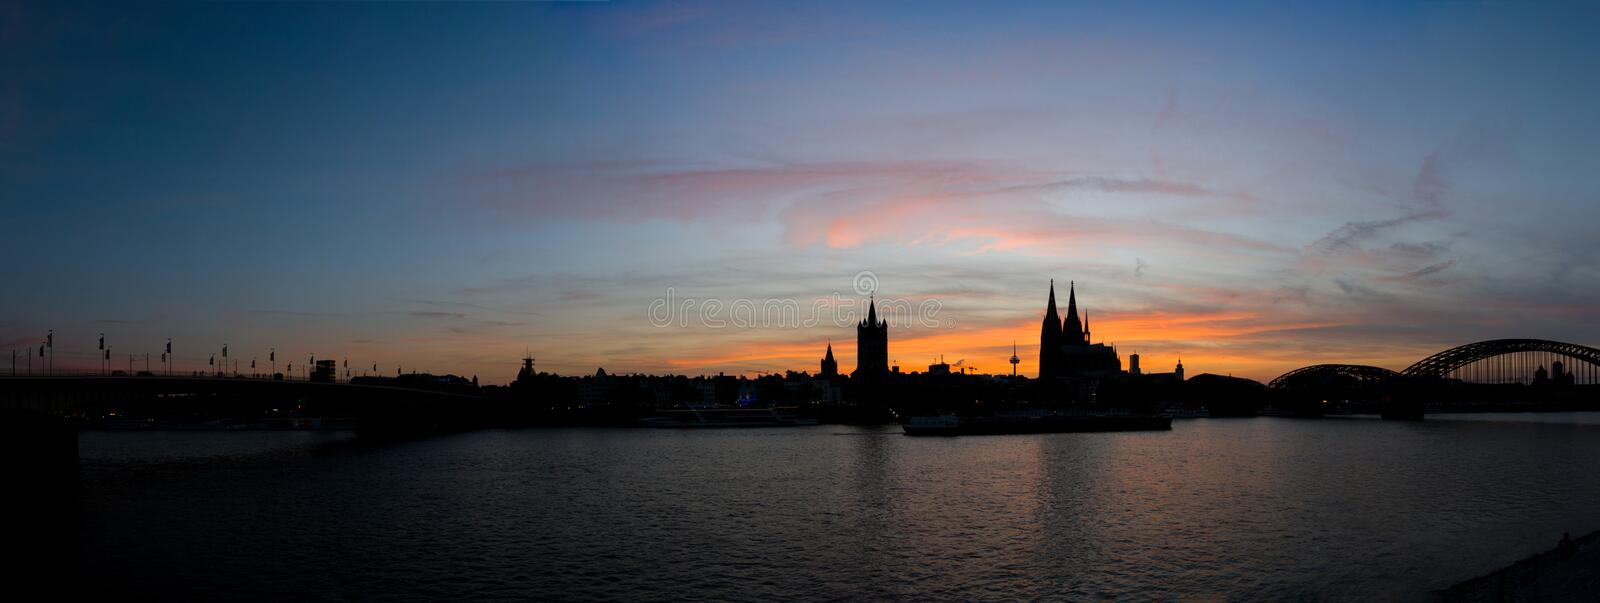 Panorama of Cologne skyline silhouette at sunset with colorful sky royalty free stock photo